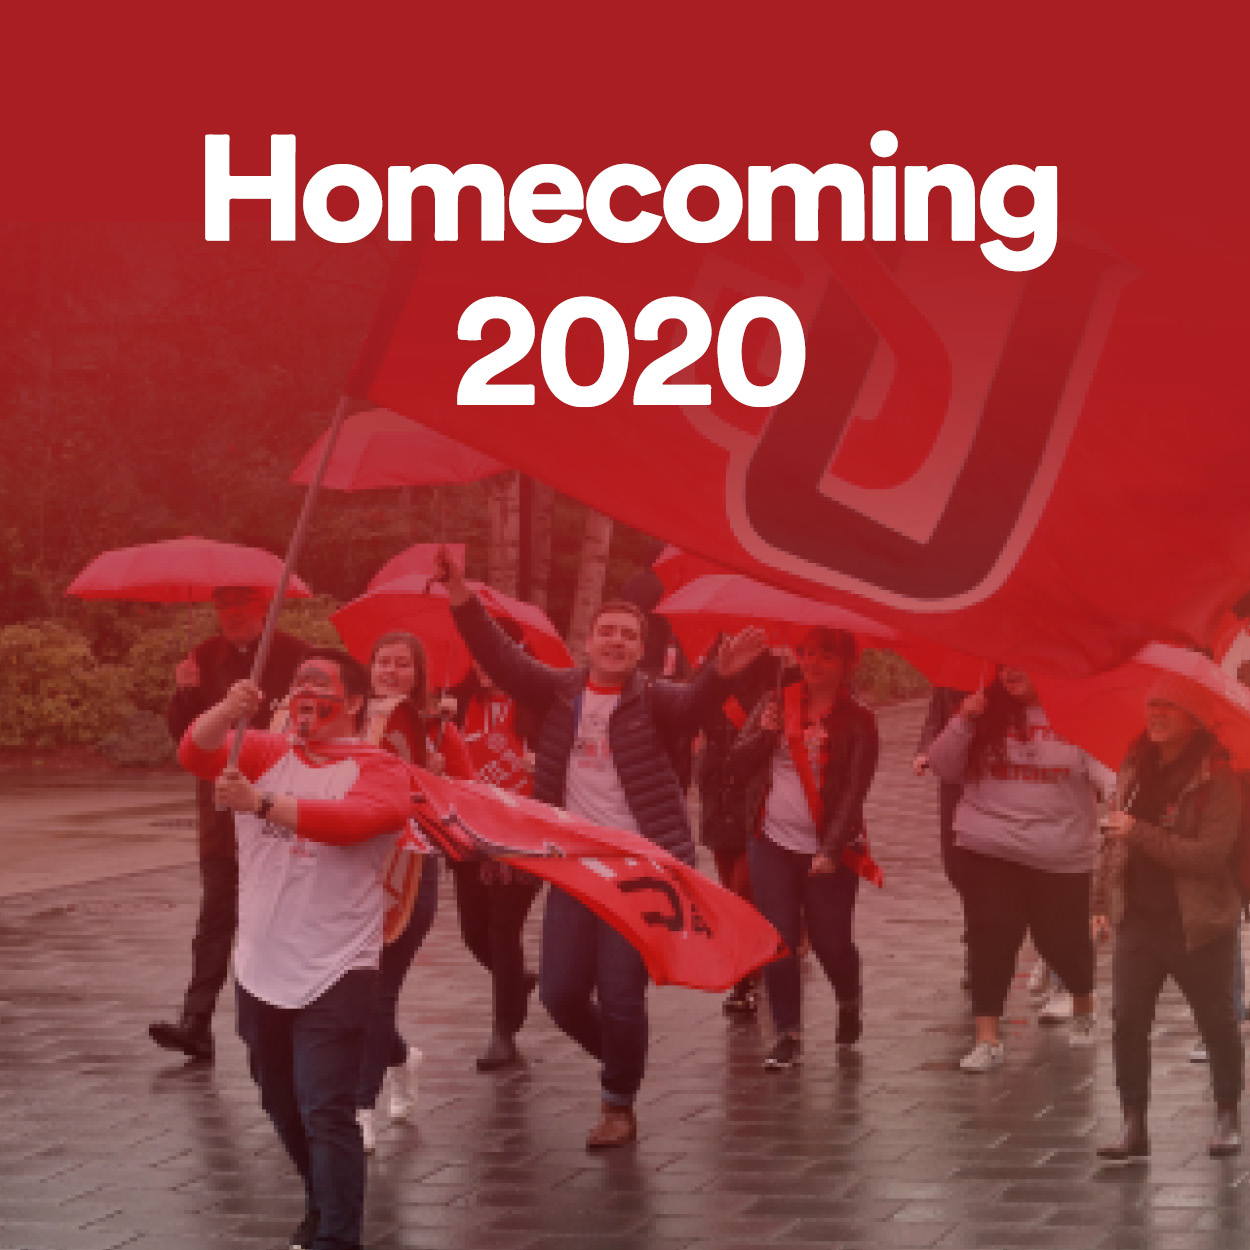 An image that says Homecoming 2020 with a photo of the red umbrella parade on campus